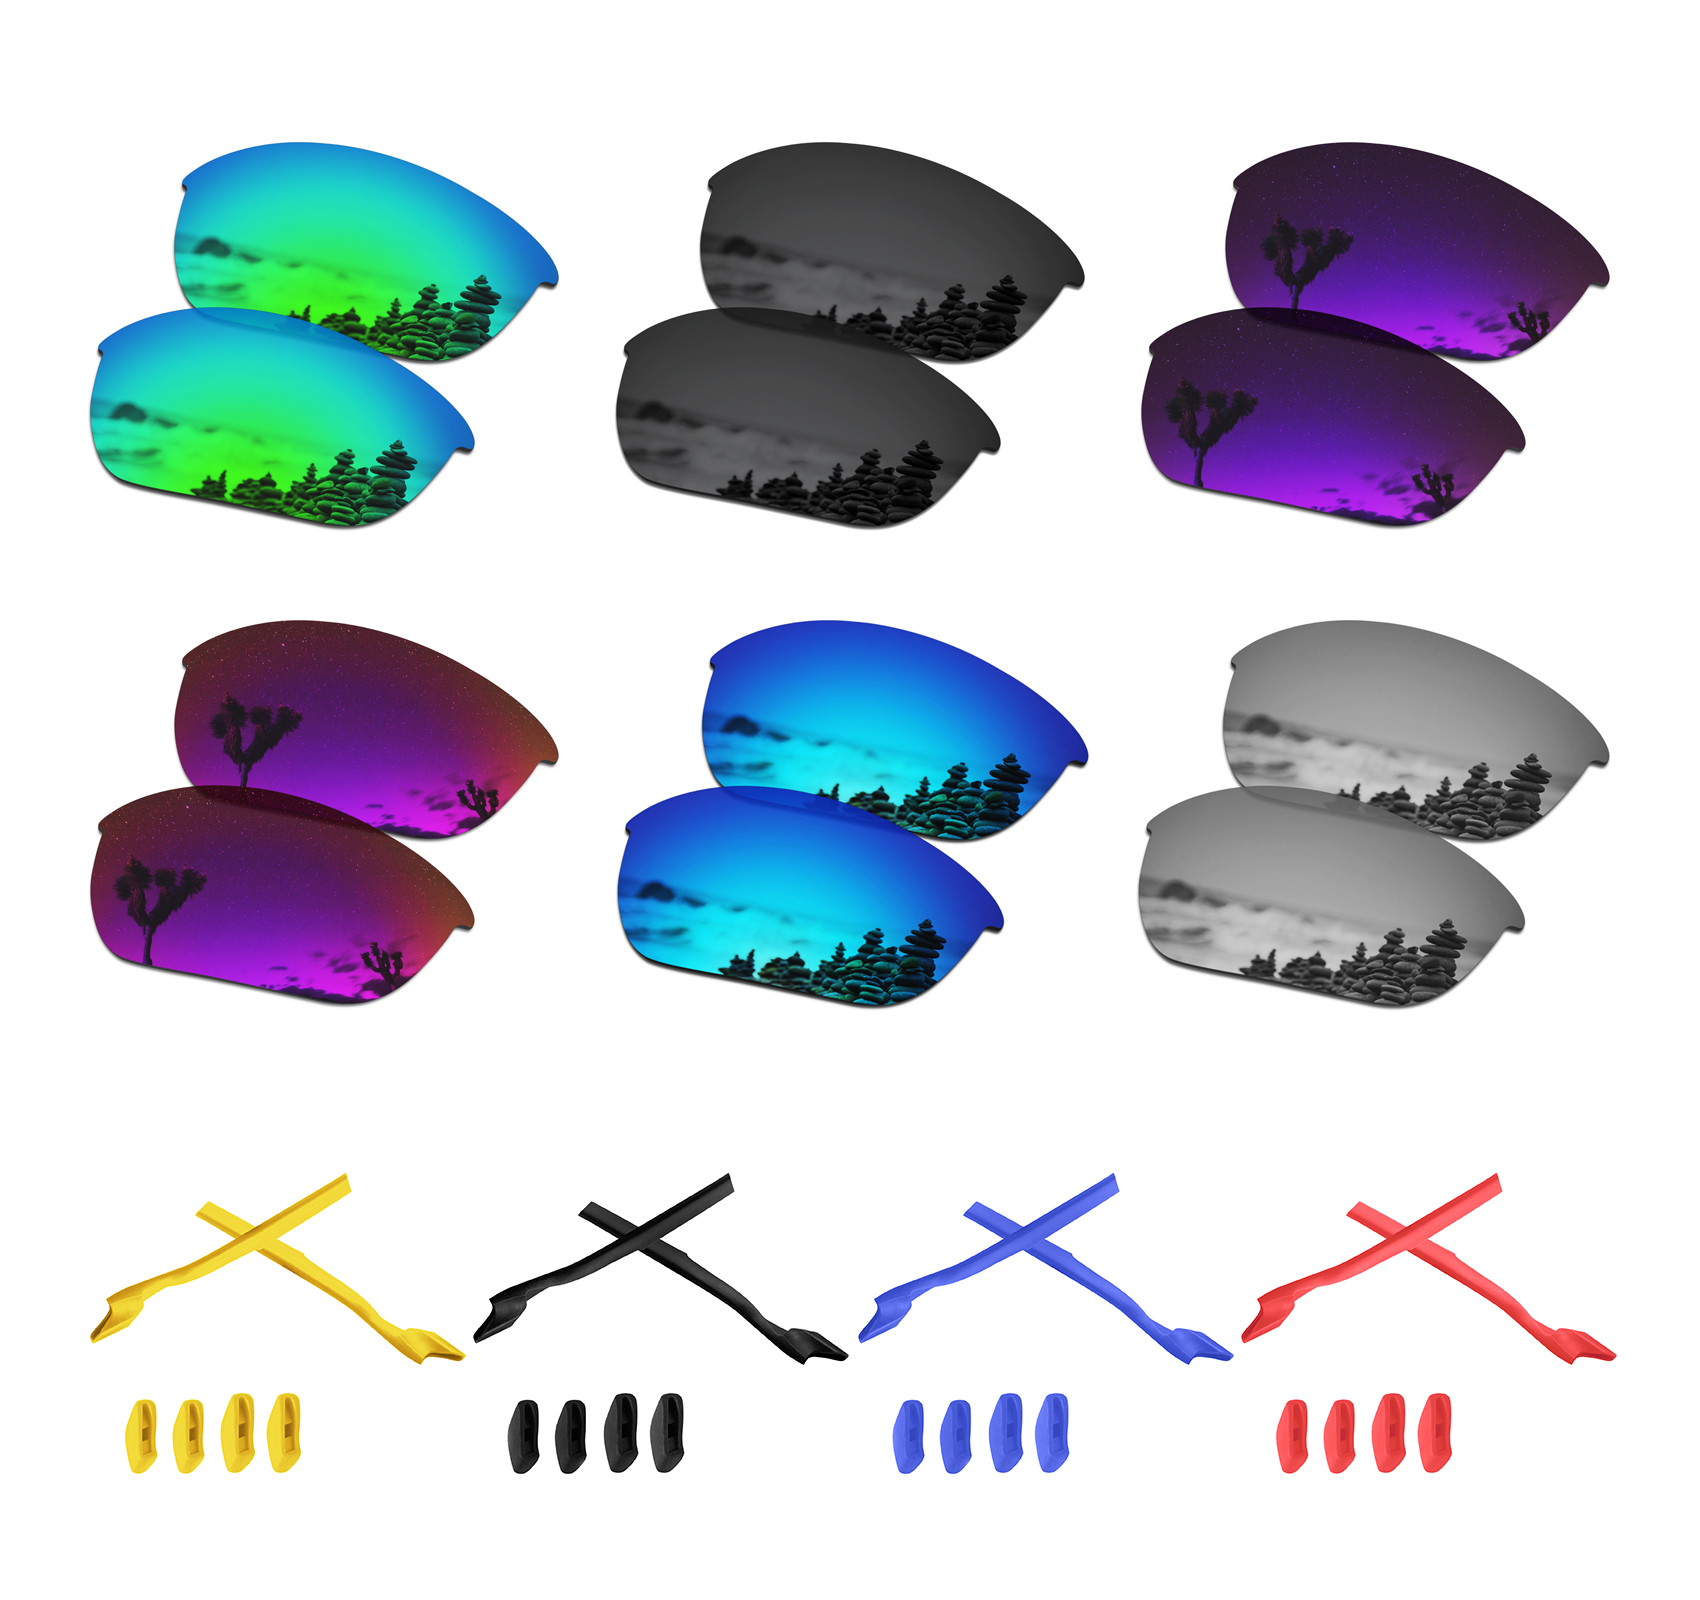 SmartVLT Polarized Replacement Lenses For Oakley Half Jacket 2.0 Sunglasses - Multiple Options